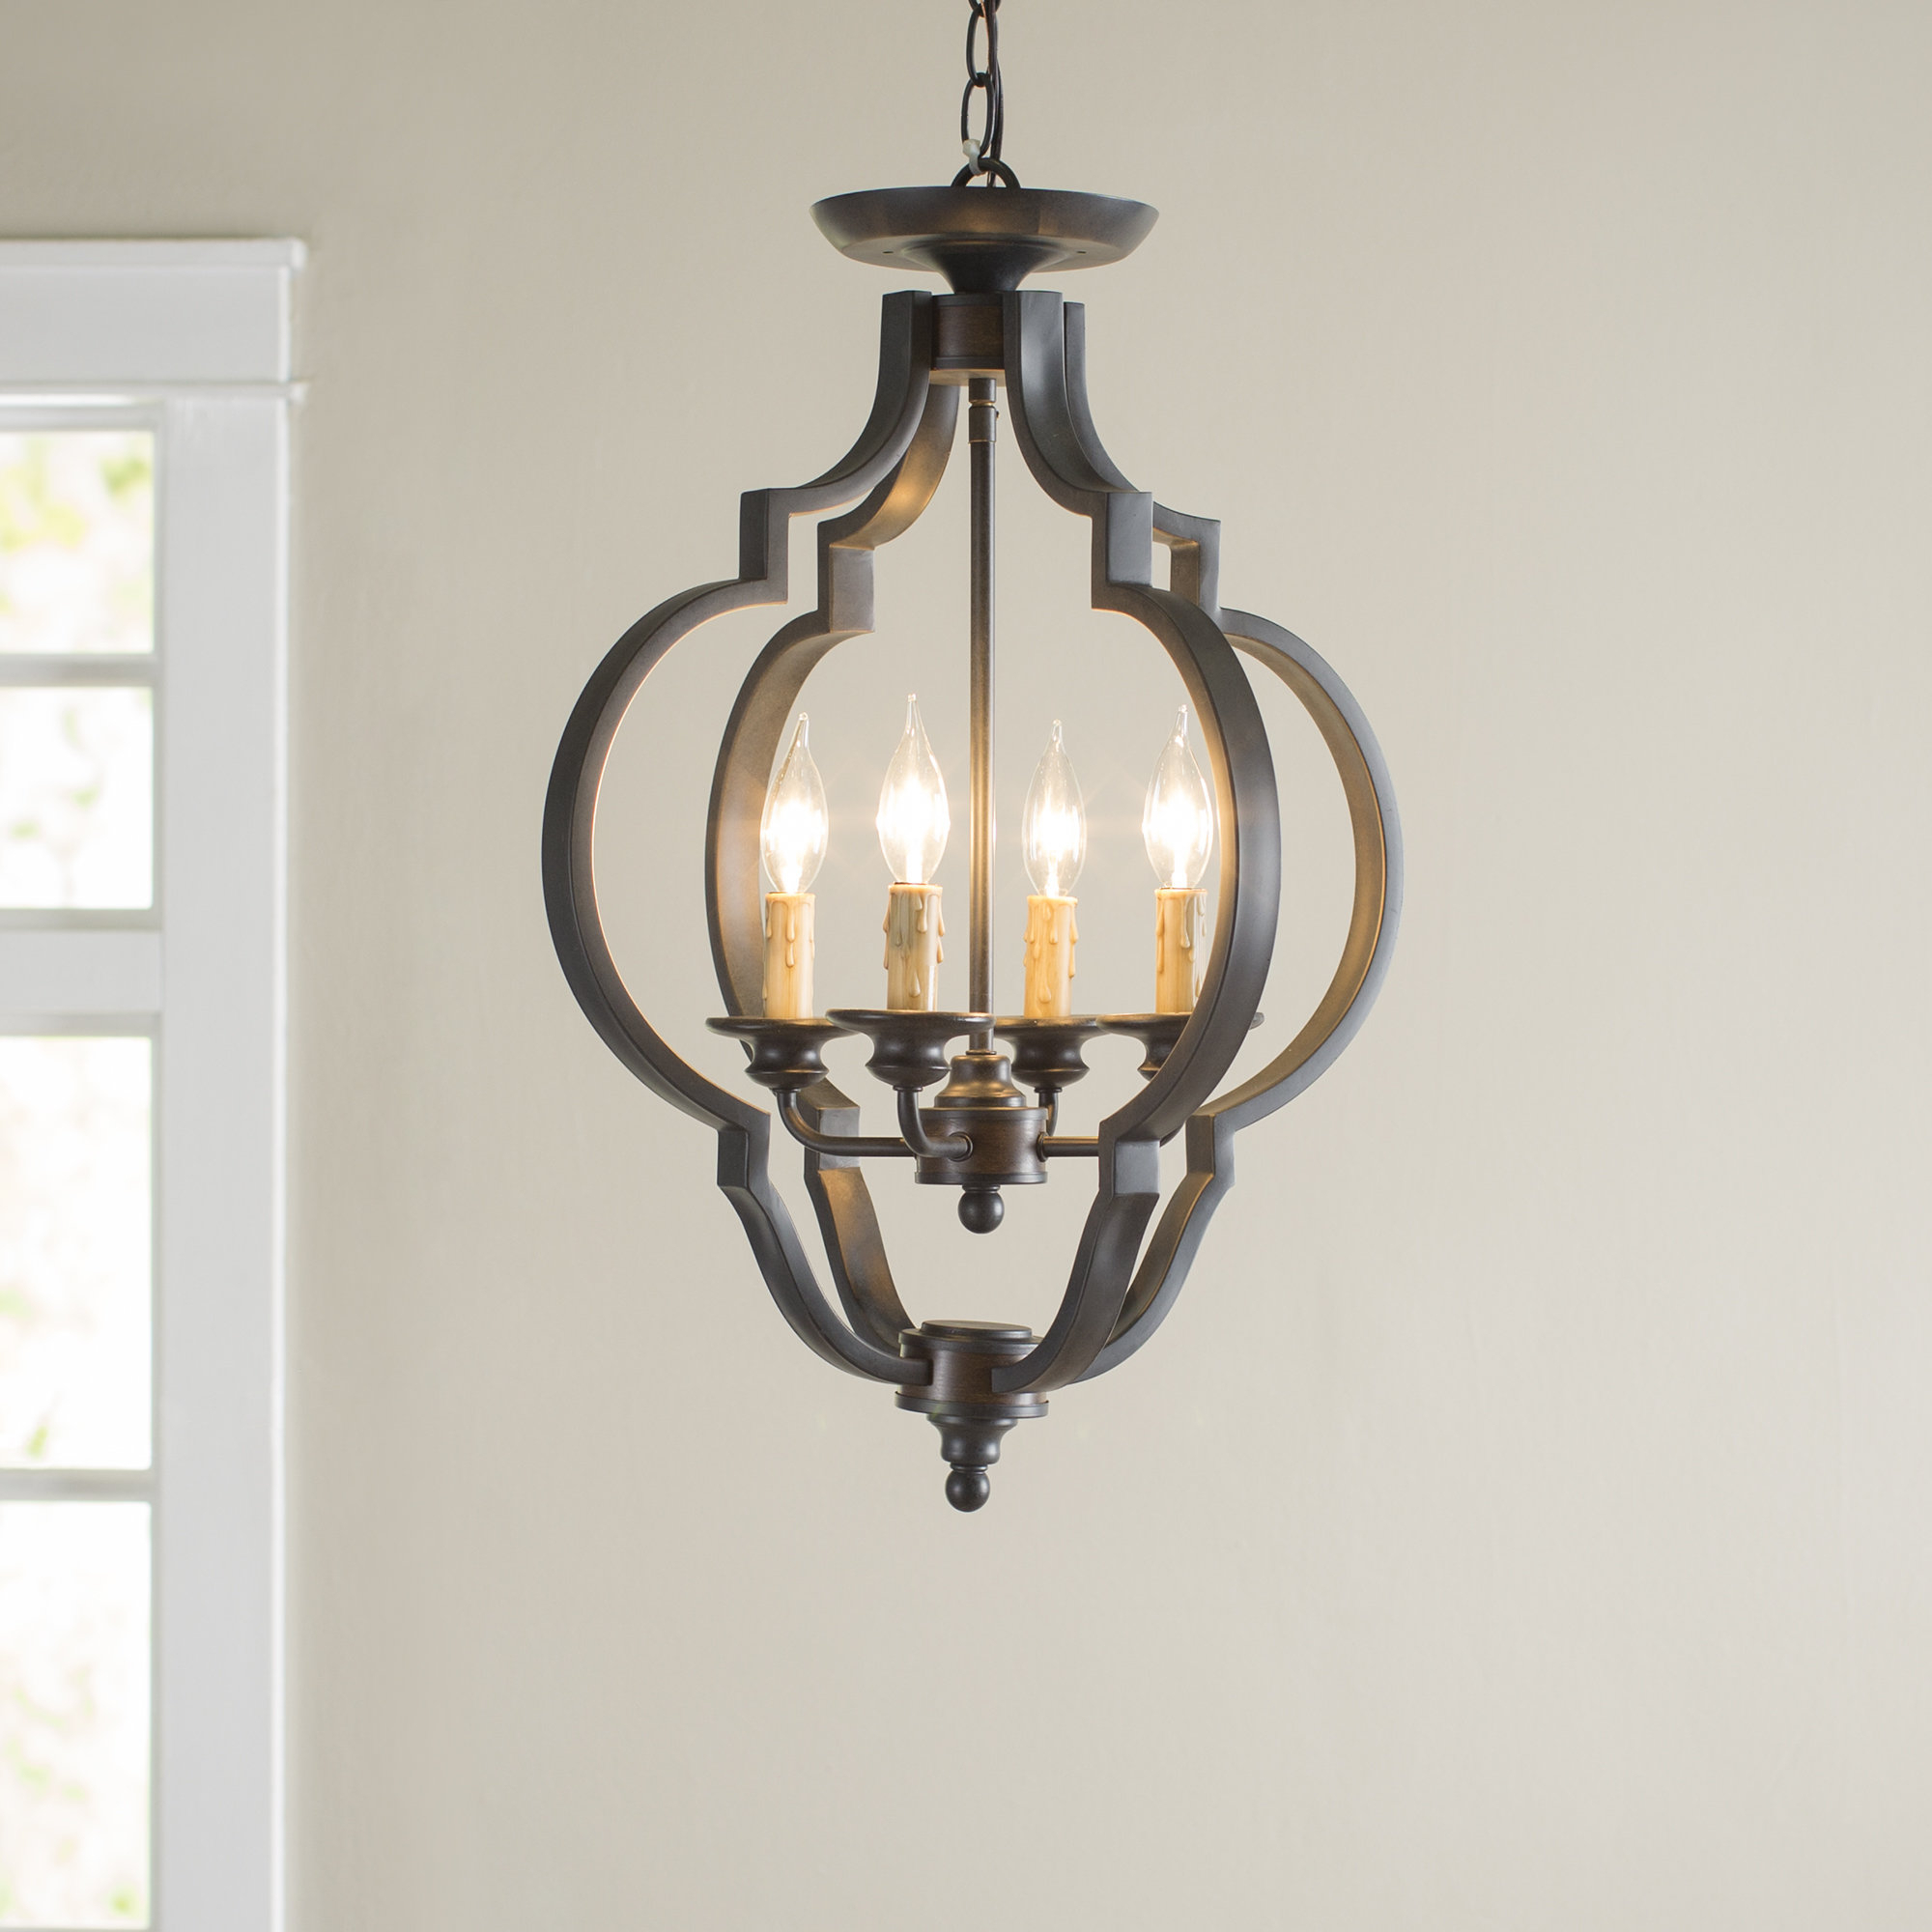 Jamesburg 4 Light Semi Flush Mount With Regard To Trendy Kaycee 4 Light Geometric Chandeliers (View 11 of 25)